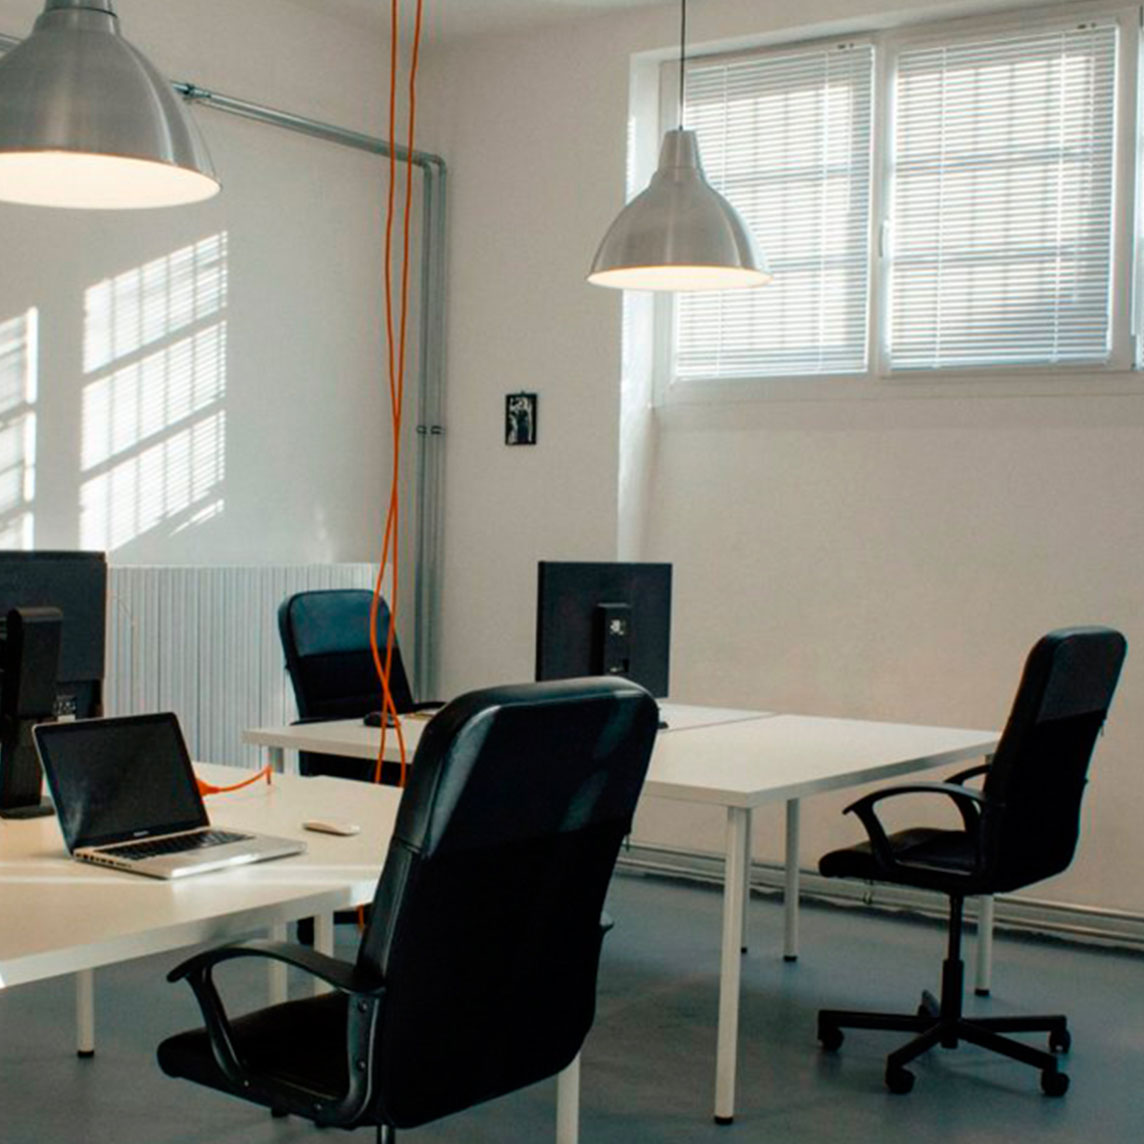 Officina Digitale Reactio, Coworking per creativi nel quartiere di Dergano e Bovisa